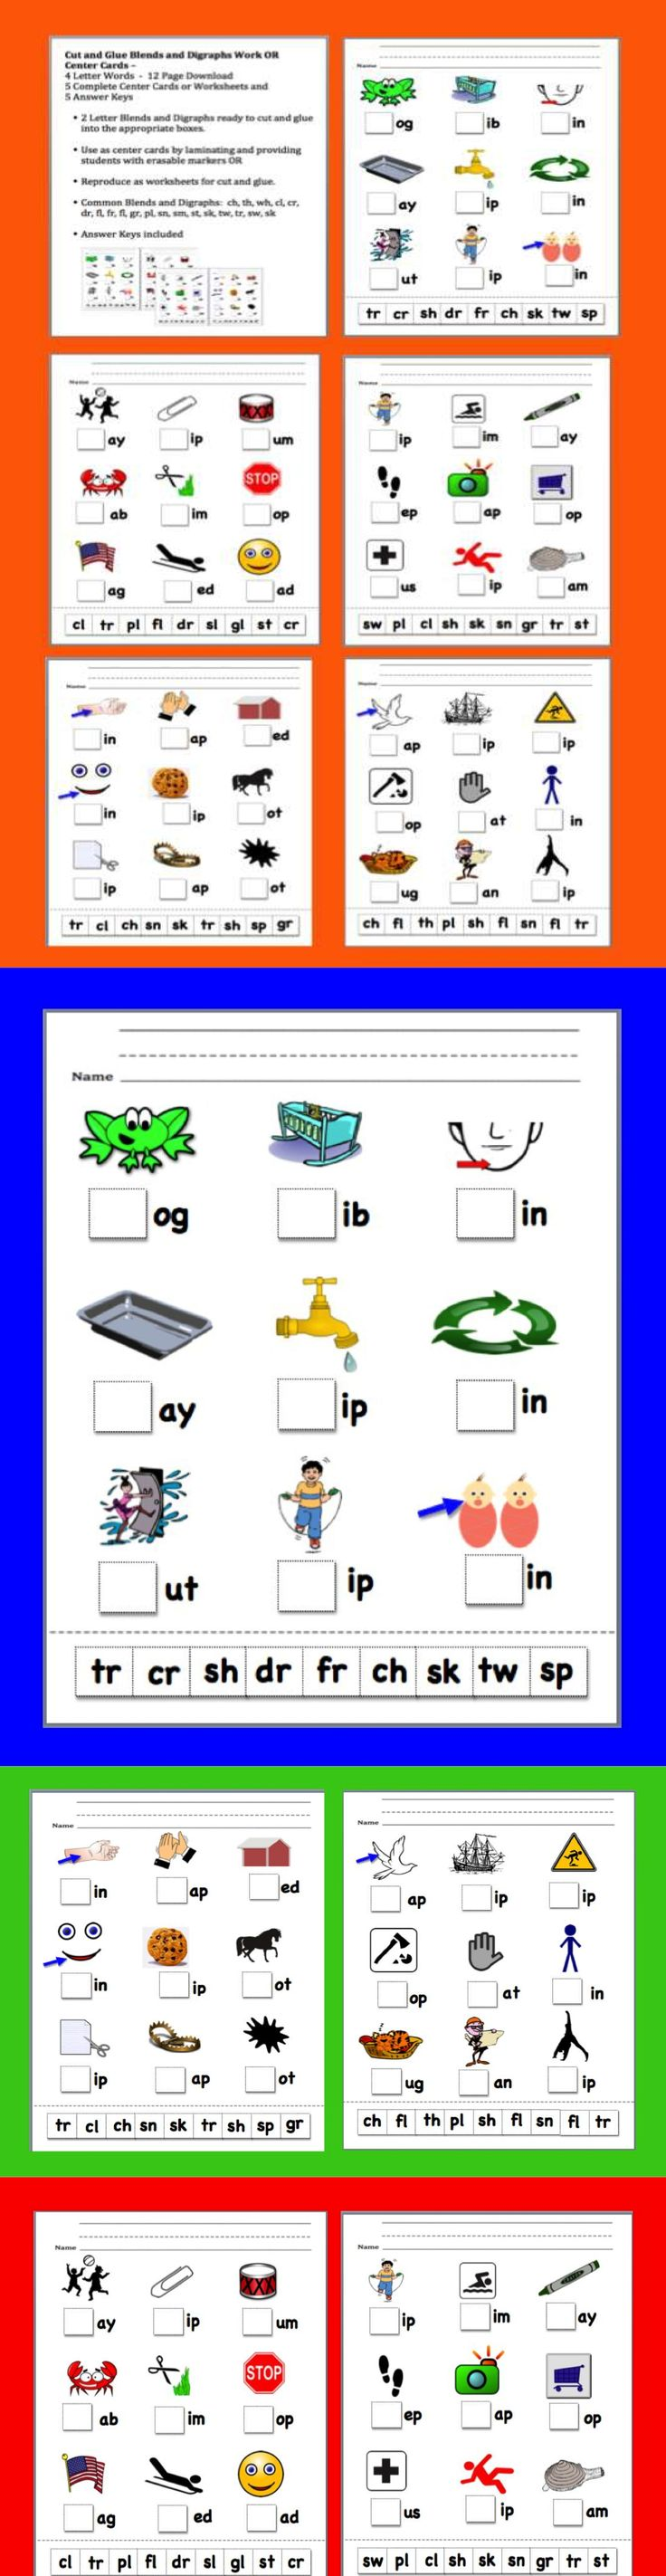 Uncategorized Blends And Digraphs Worksheets 59 best blends images on pinterest teaching ideas phonics and digraphs cut glue center cards or worksheets common core